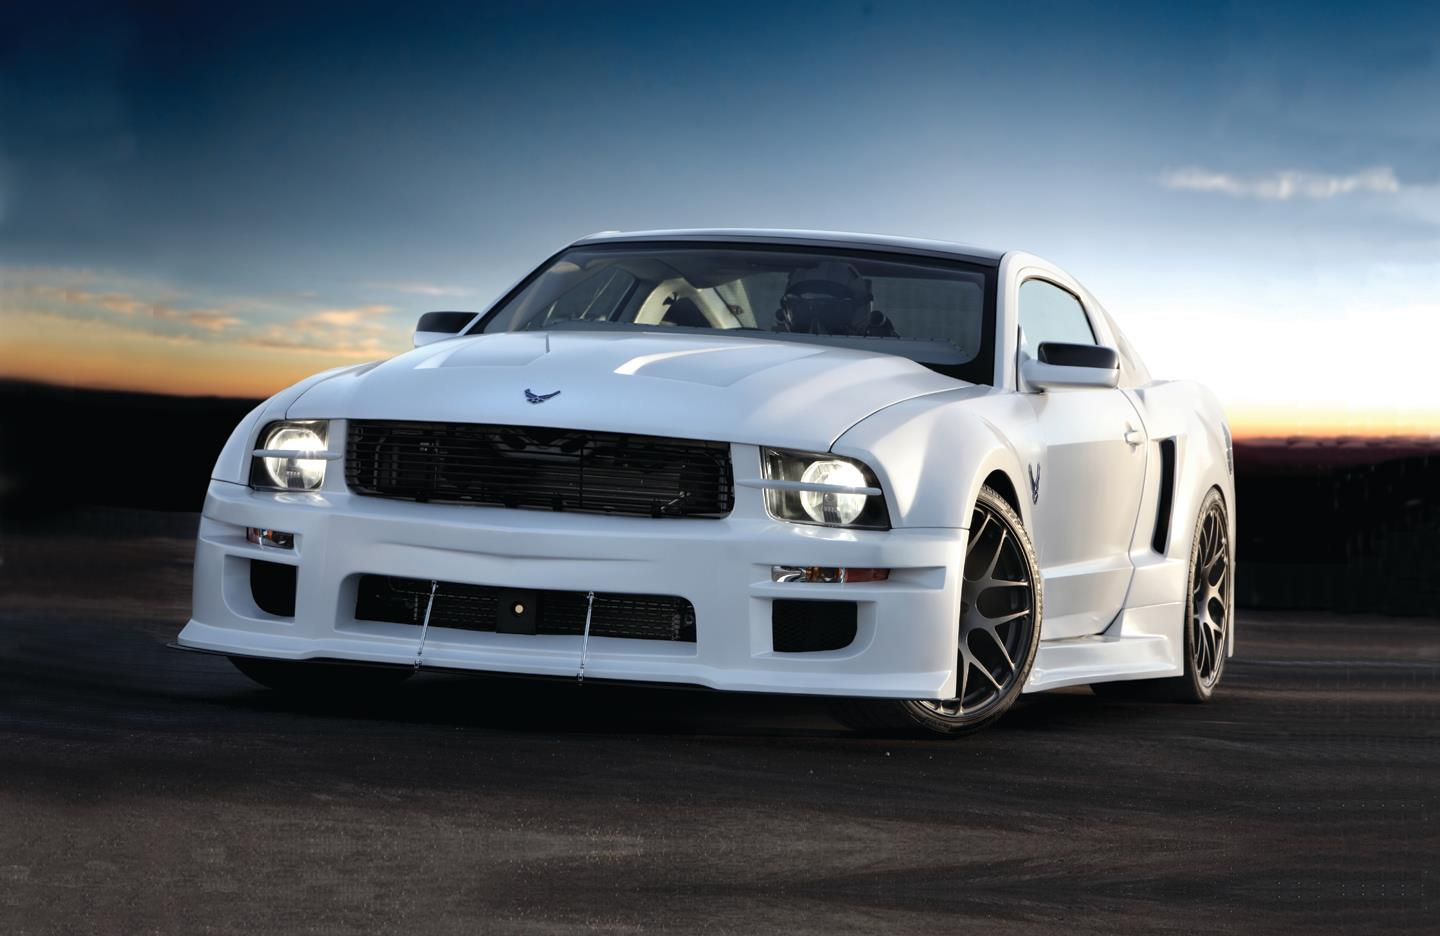 Usaf X 1 Ford Mustang Gt By Galpin Auto Sports Picture 74306